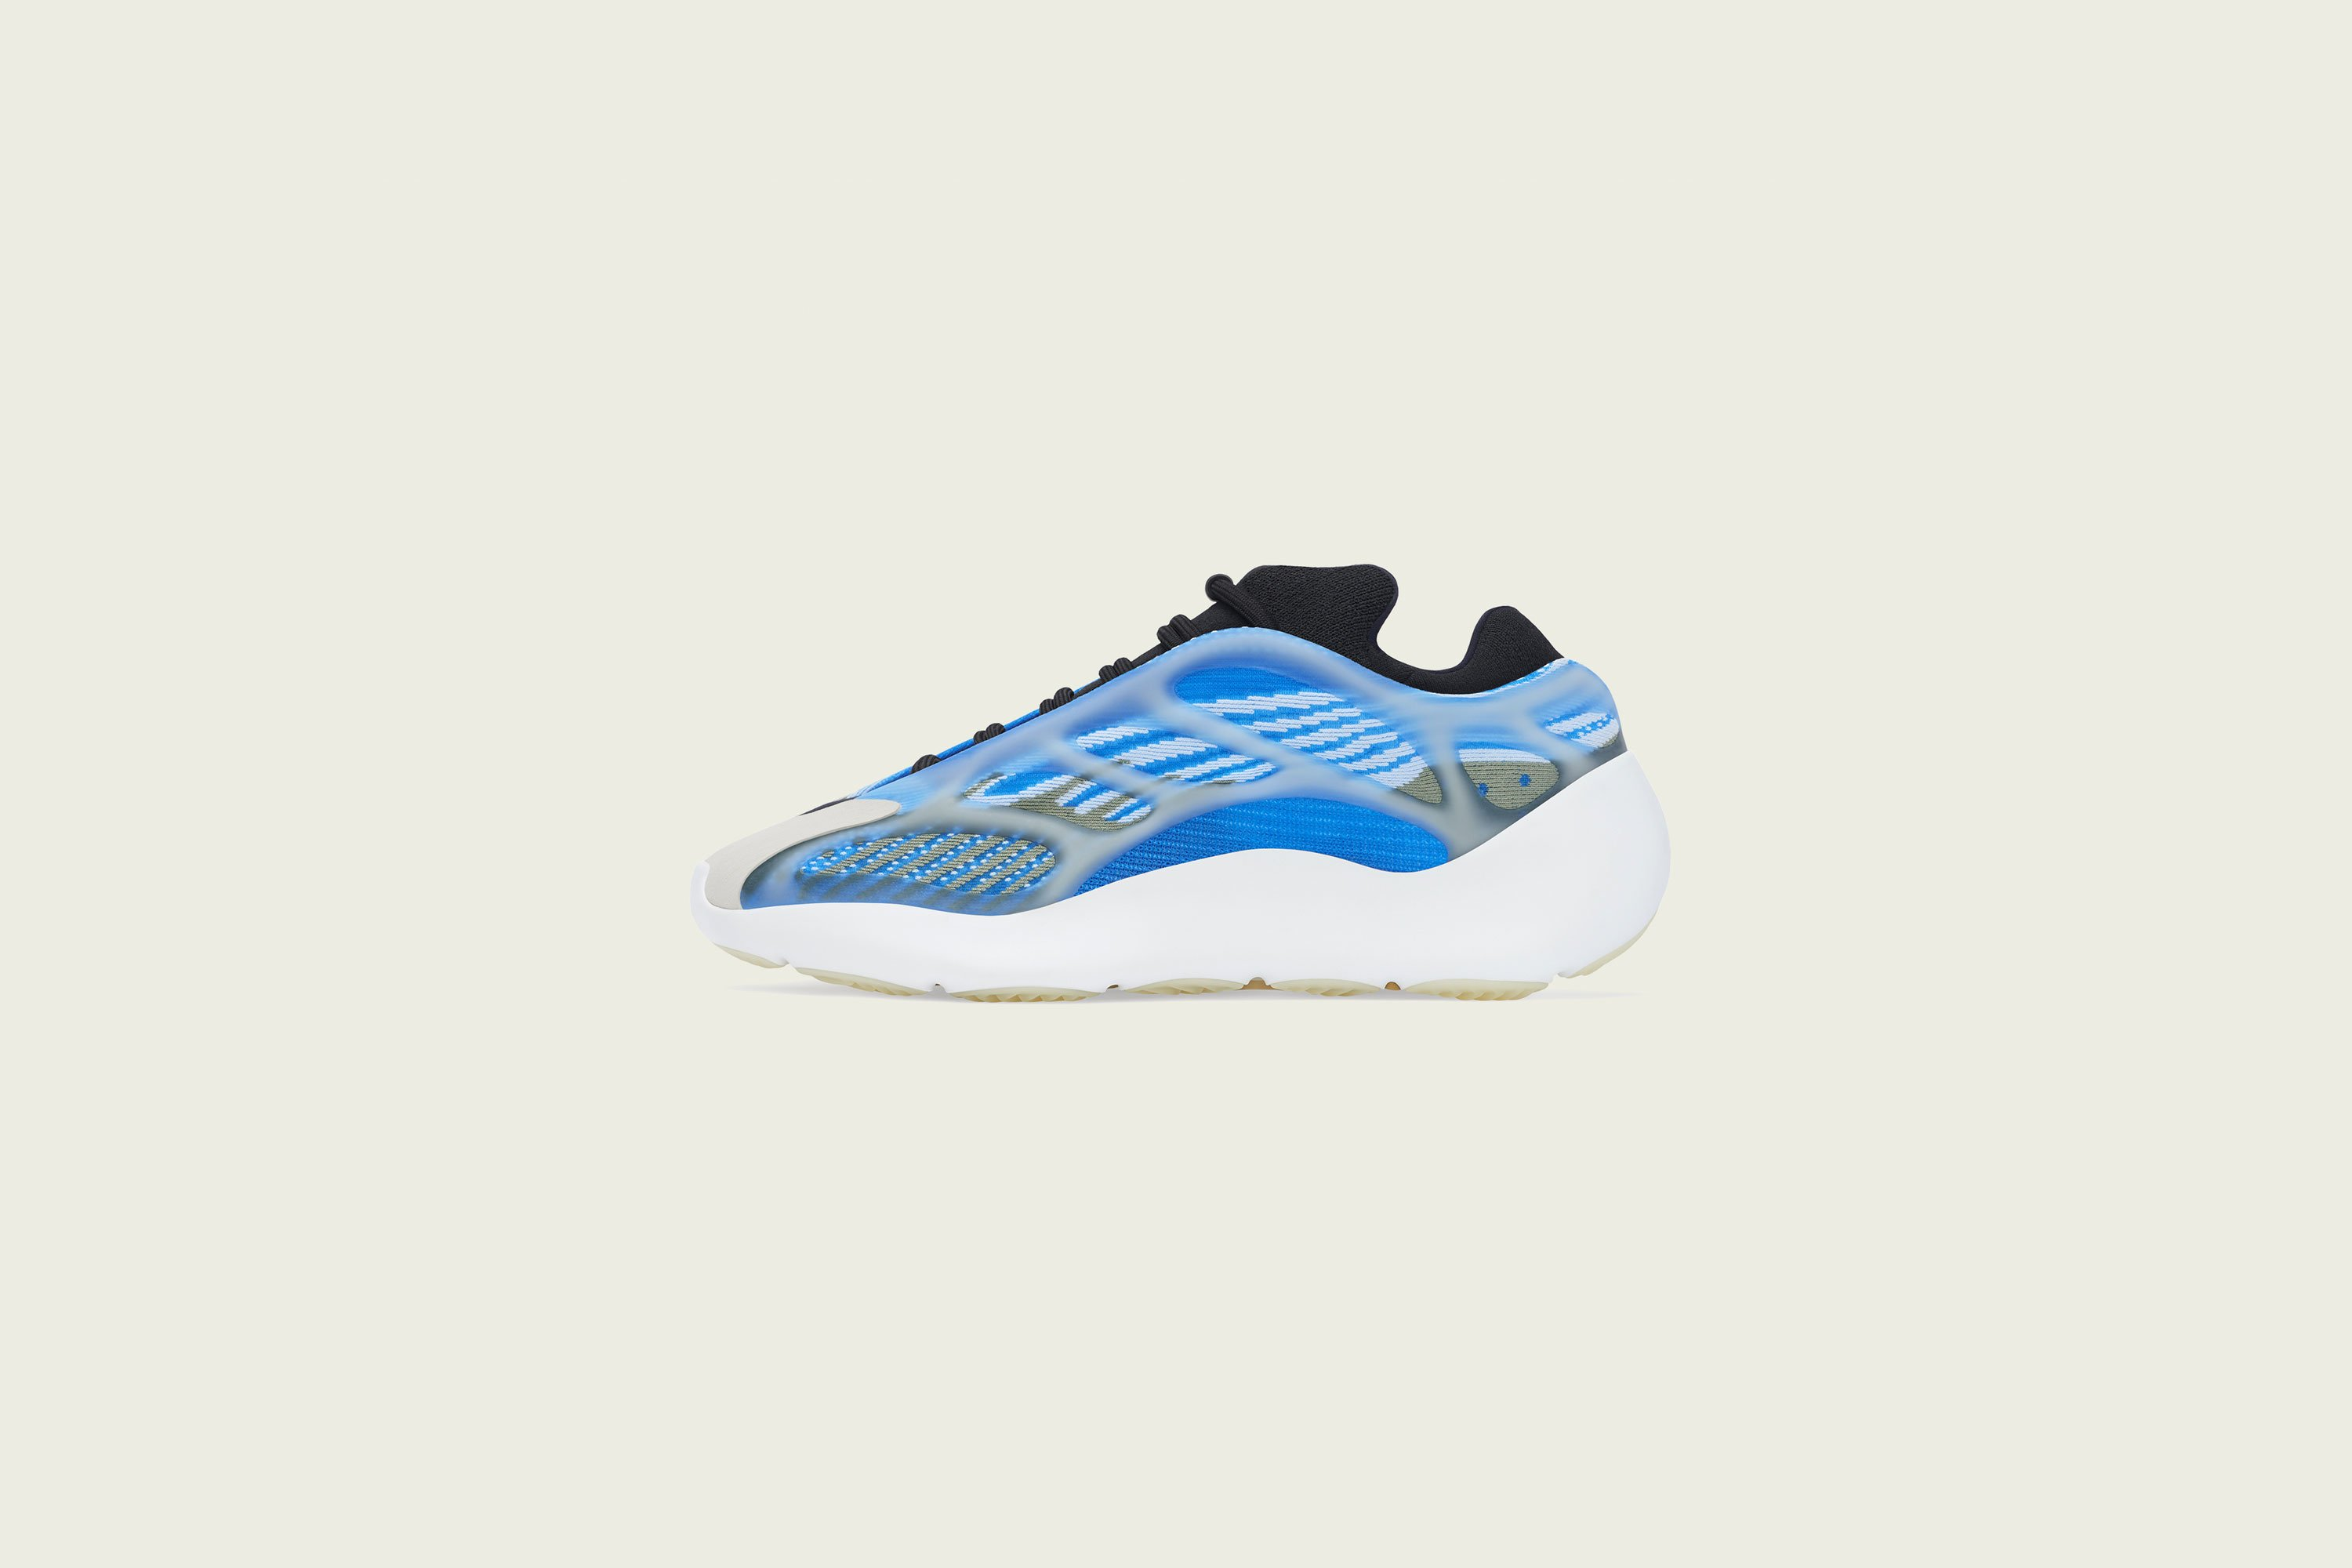 Up There Launches - adidas Originals Yeezy Boost 700v3 'Arzareth'